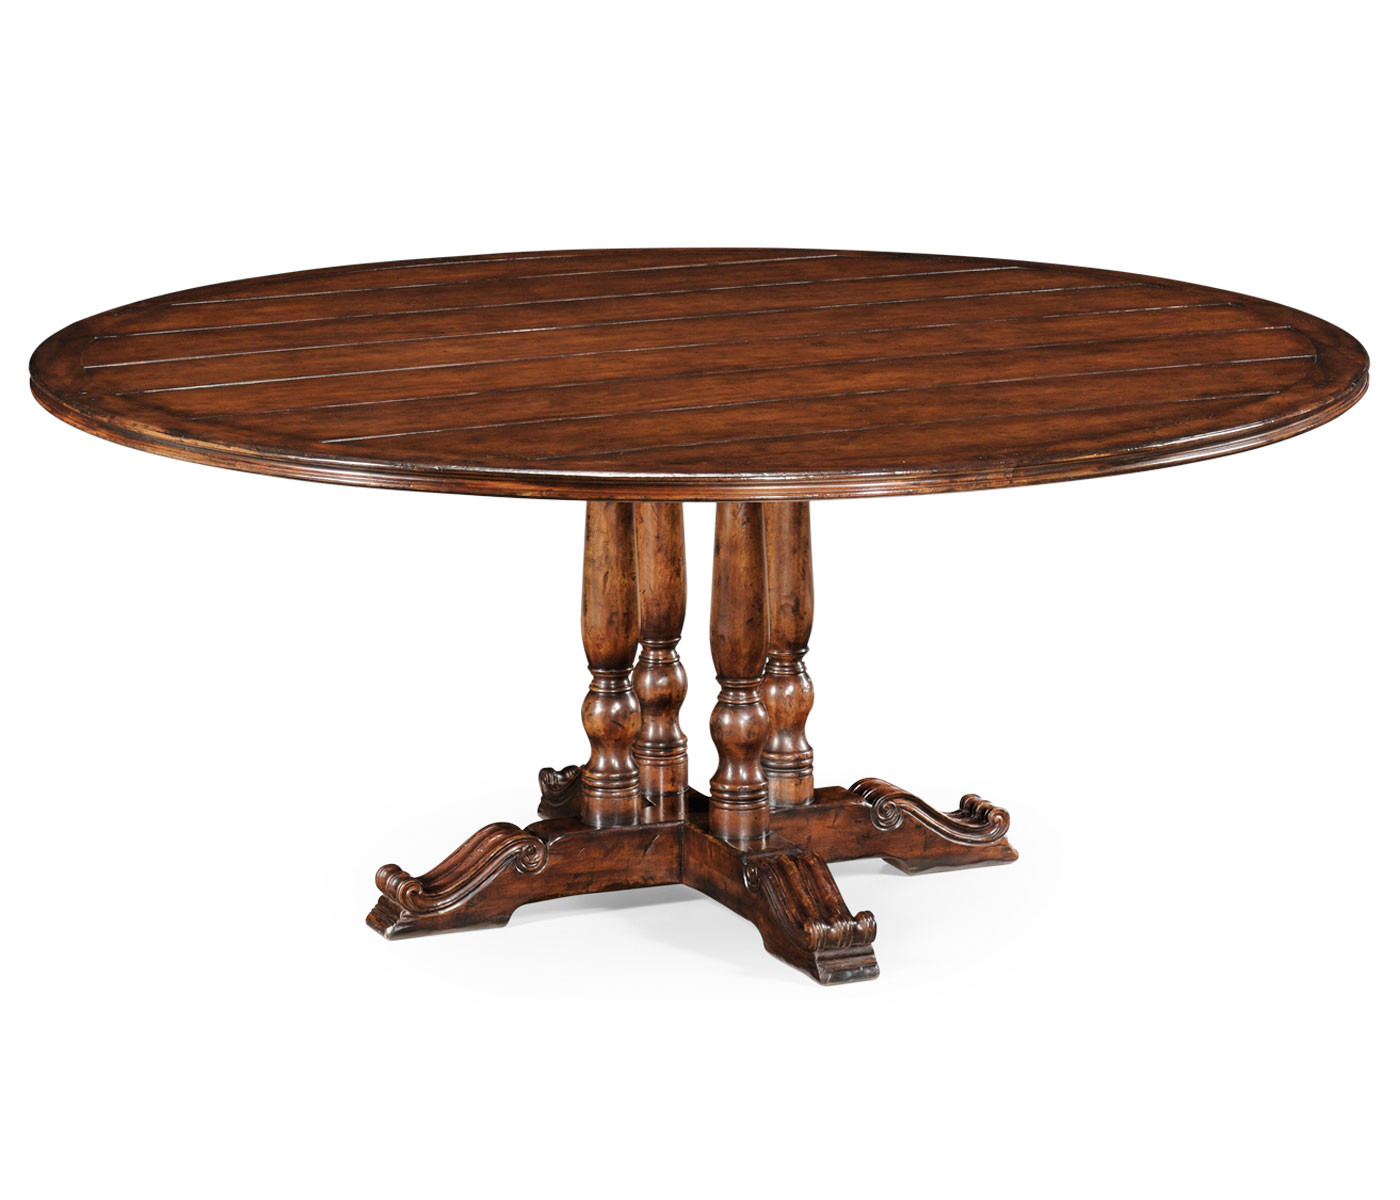 """Best ideas about Country Dining Table . Save or Pin 70"""" French round country dining table Now."""